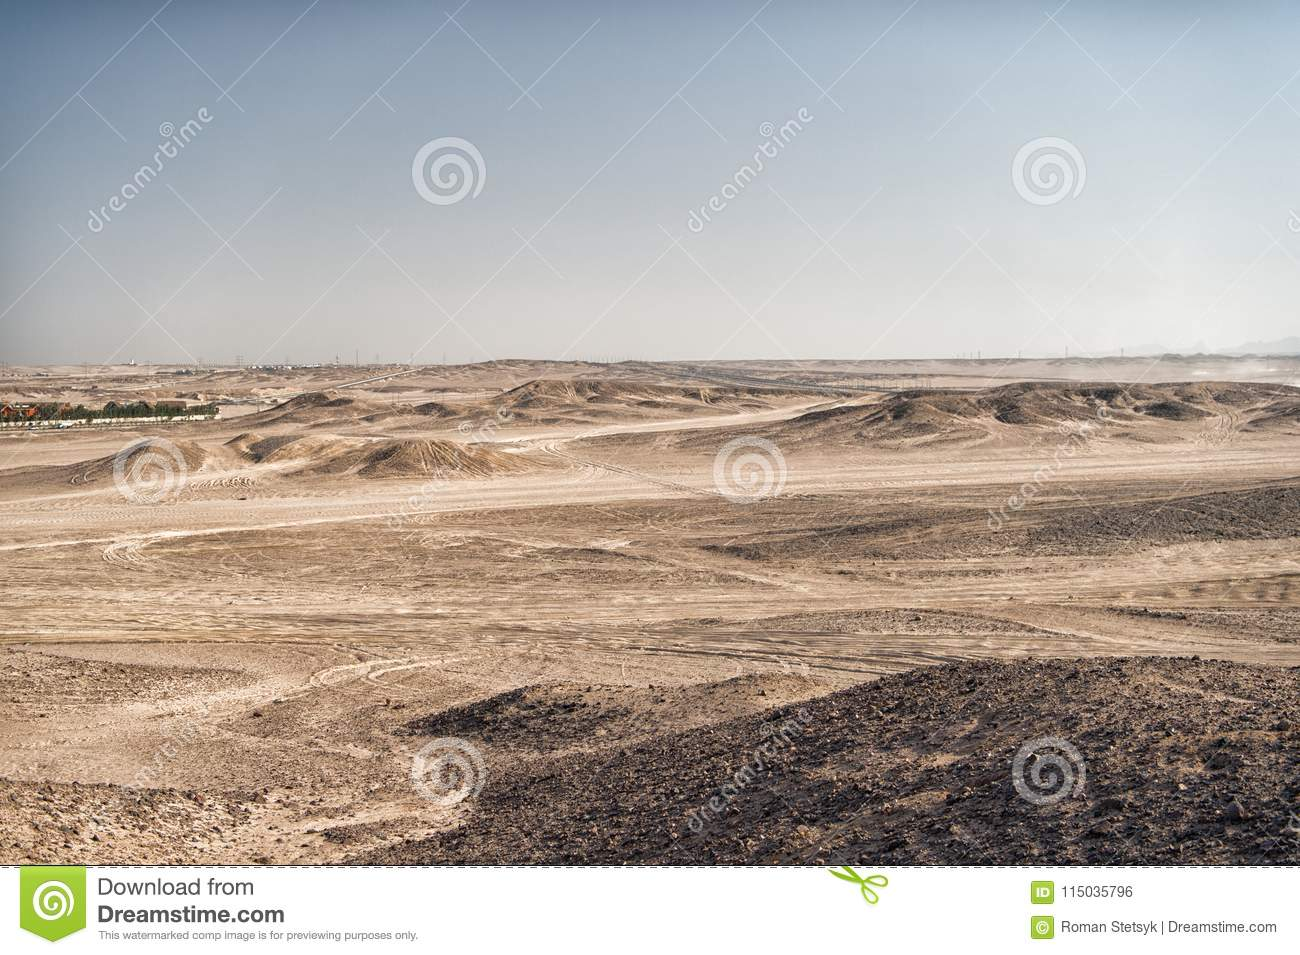 Desert landscape on clear blue sky background. Dune land with dry terrain surface. Ecology and global warming effect. Hopelessness